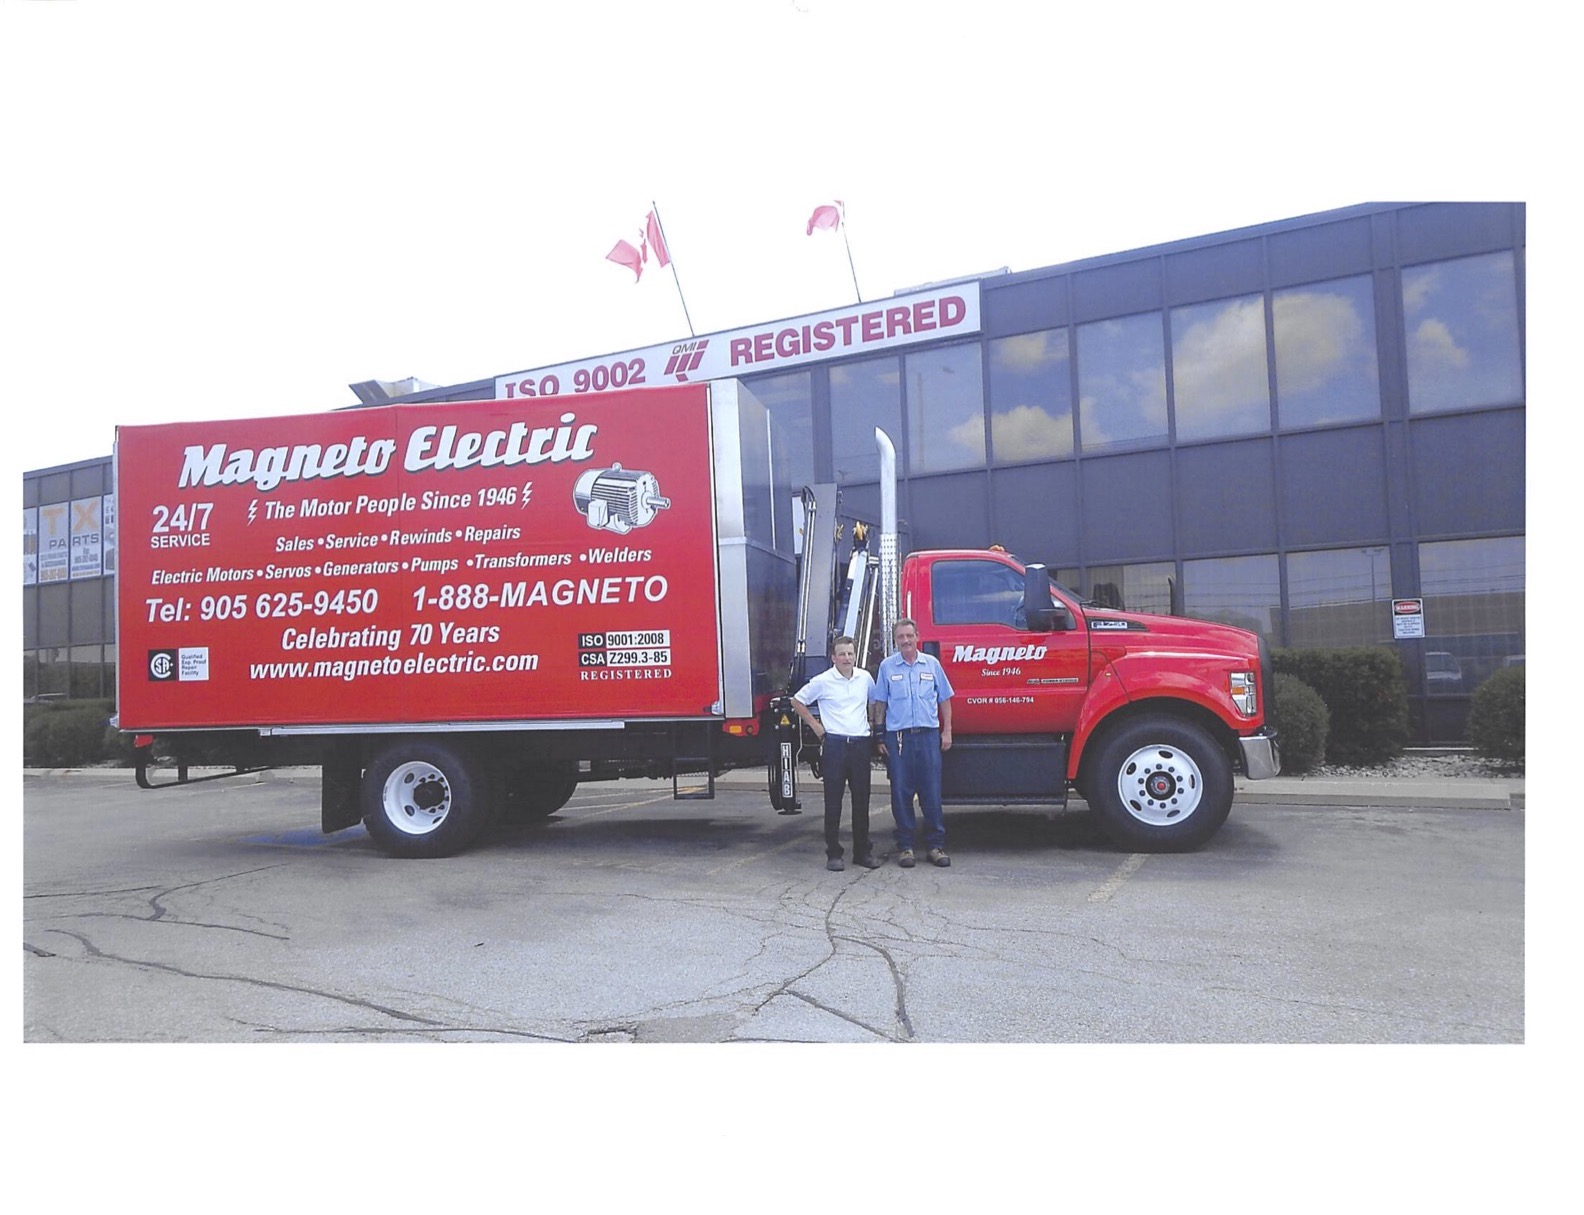 Magneto Electric delivery truck